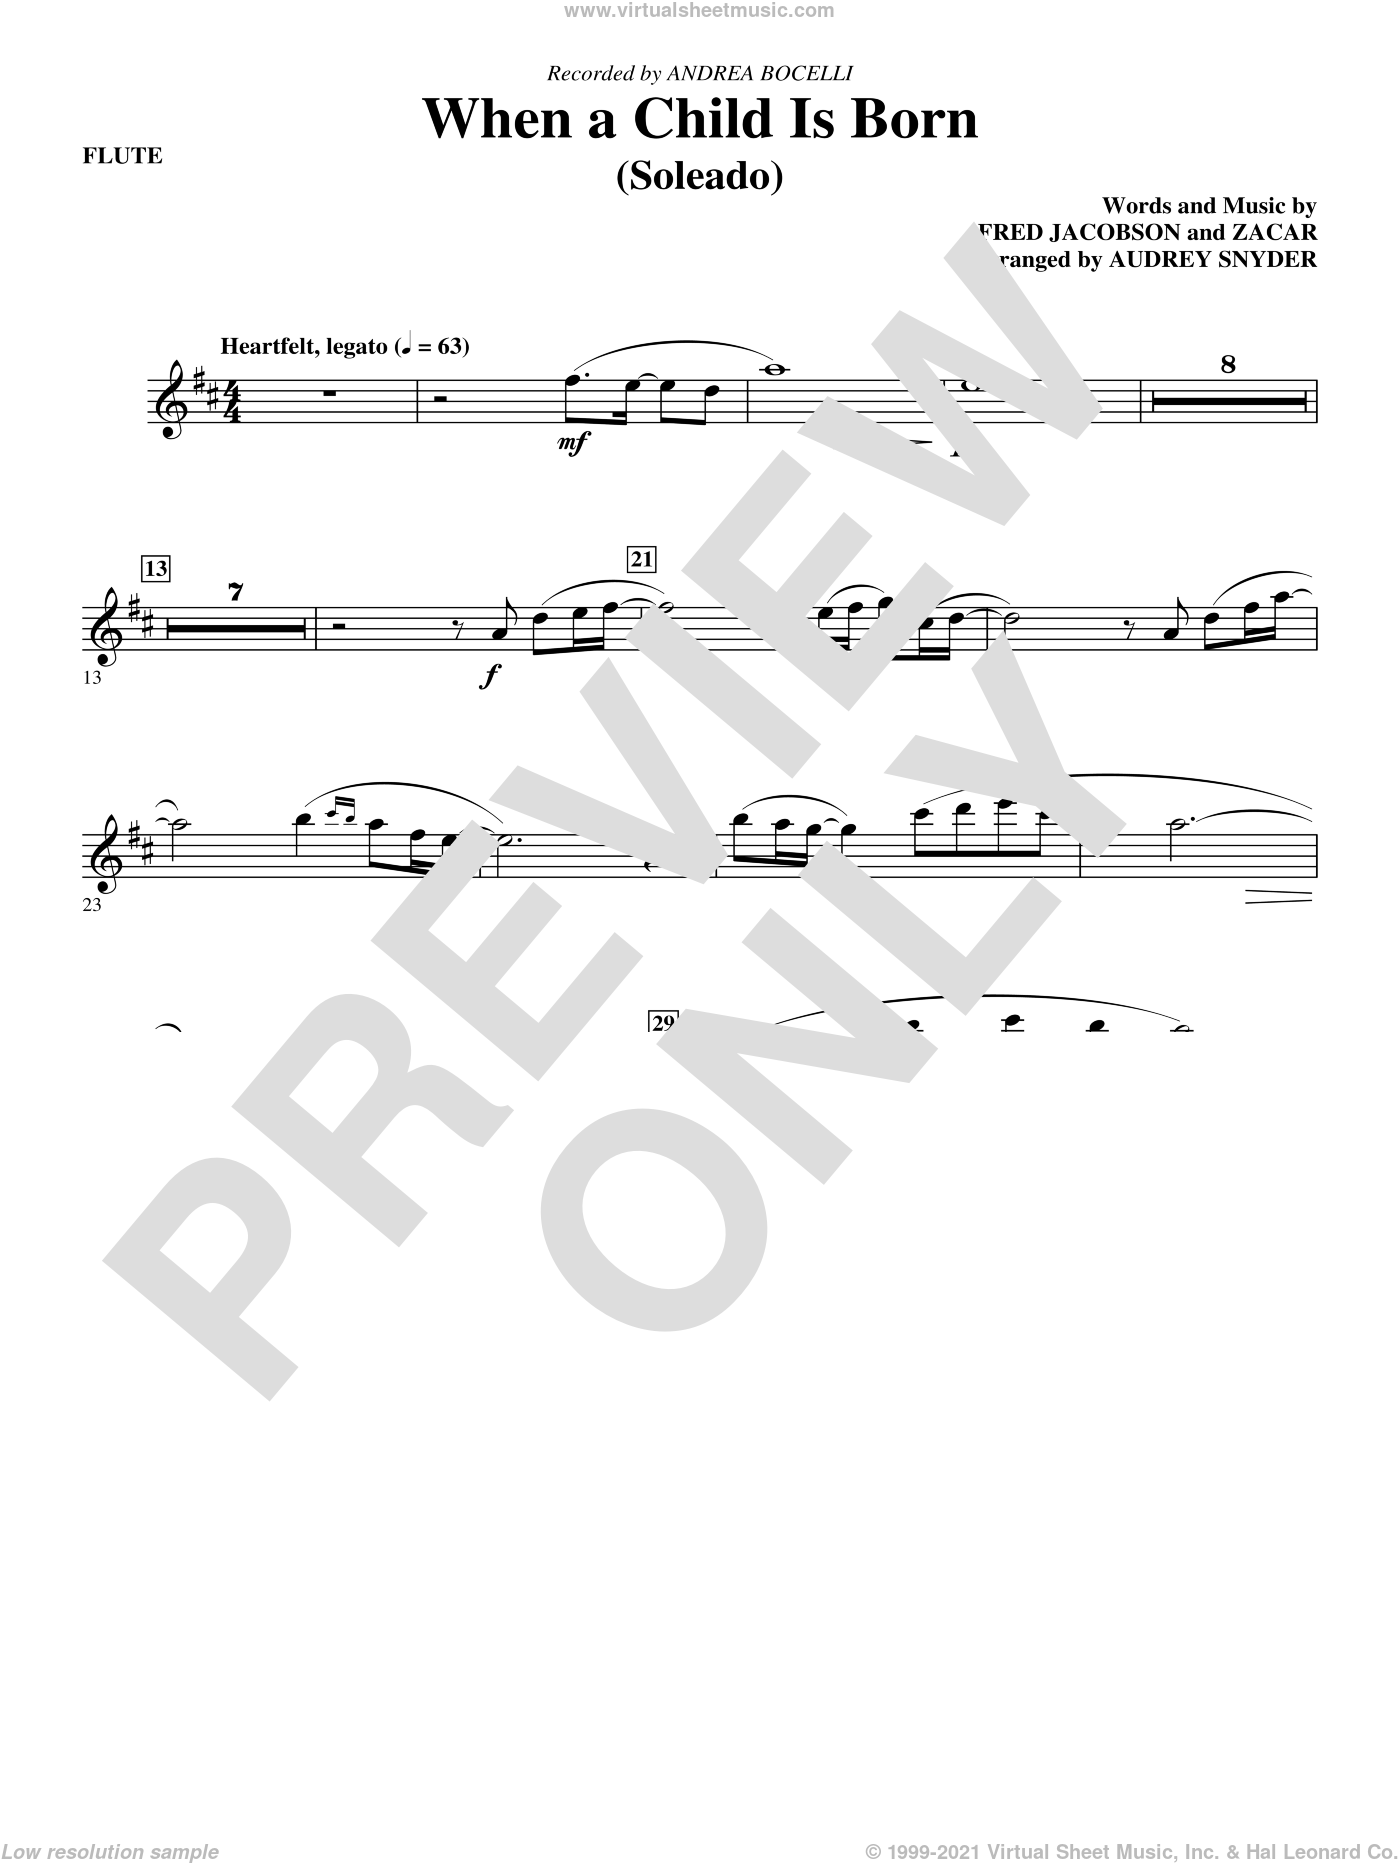 When A Child Is Born (Soleado) sheet music for orchestra/band (flute) by Fred Jacobson